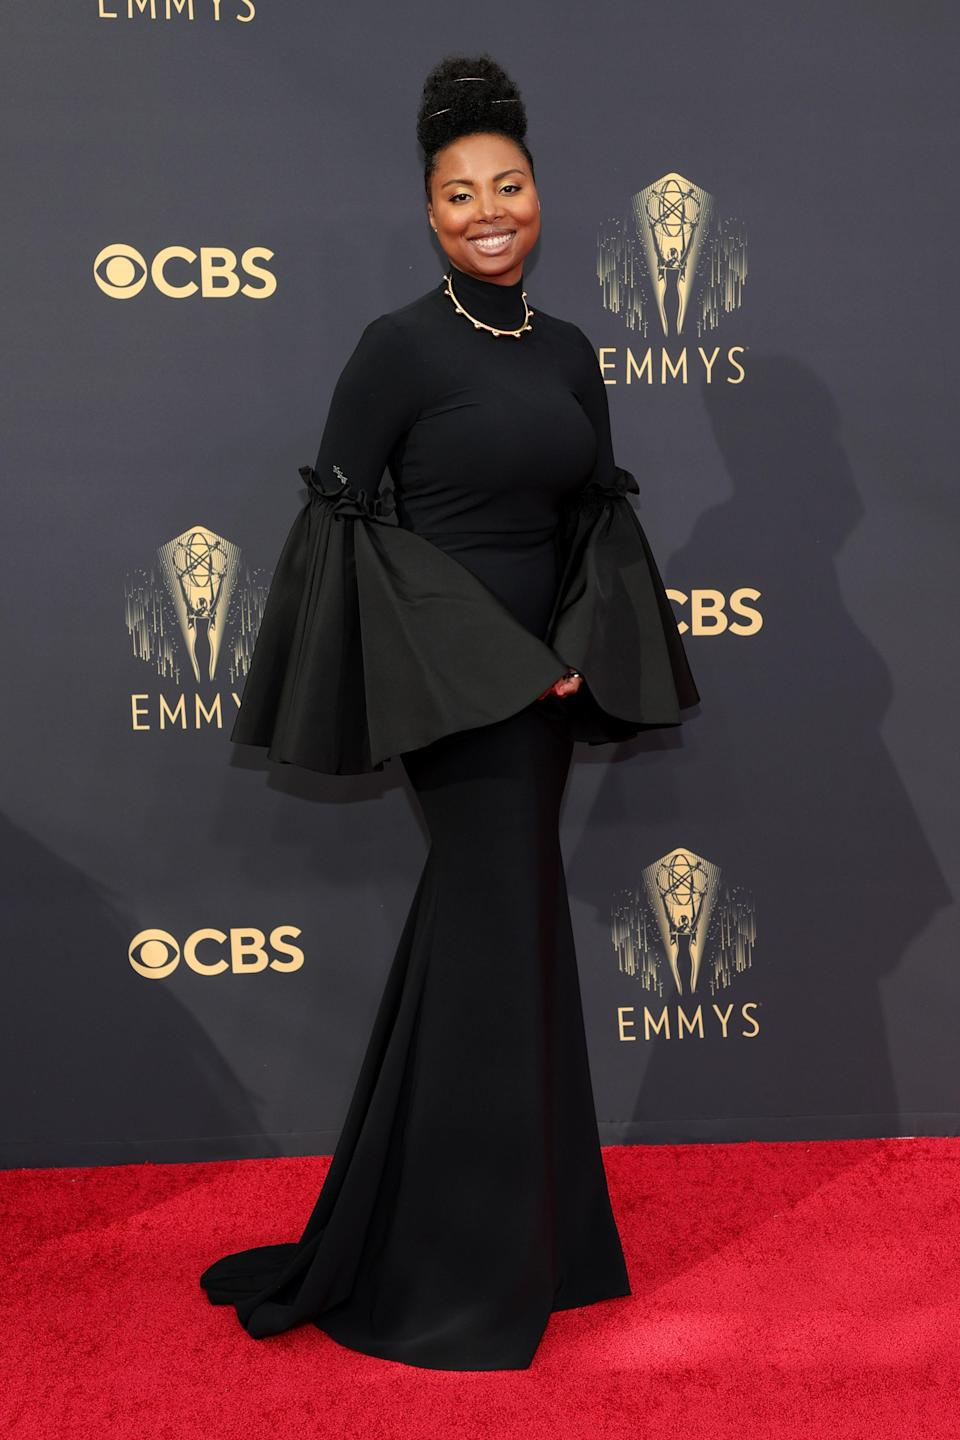 We're big fans of Misha Green's statement sleeves, which brought a touch of whimsy to her high-necked black gown.